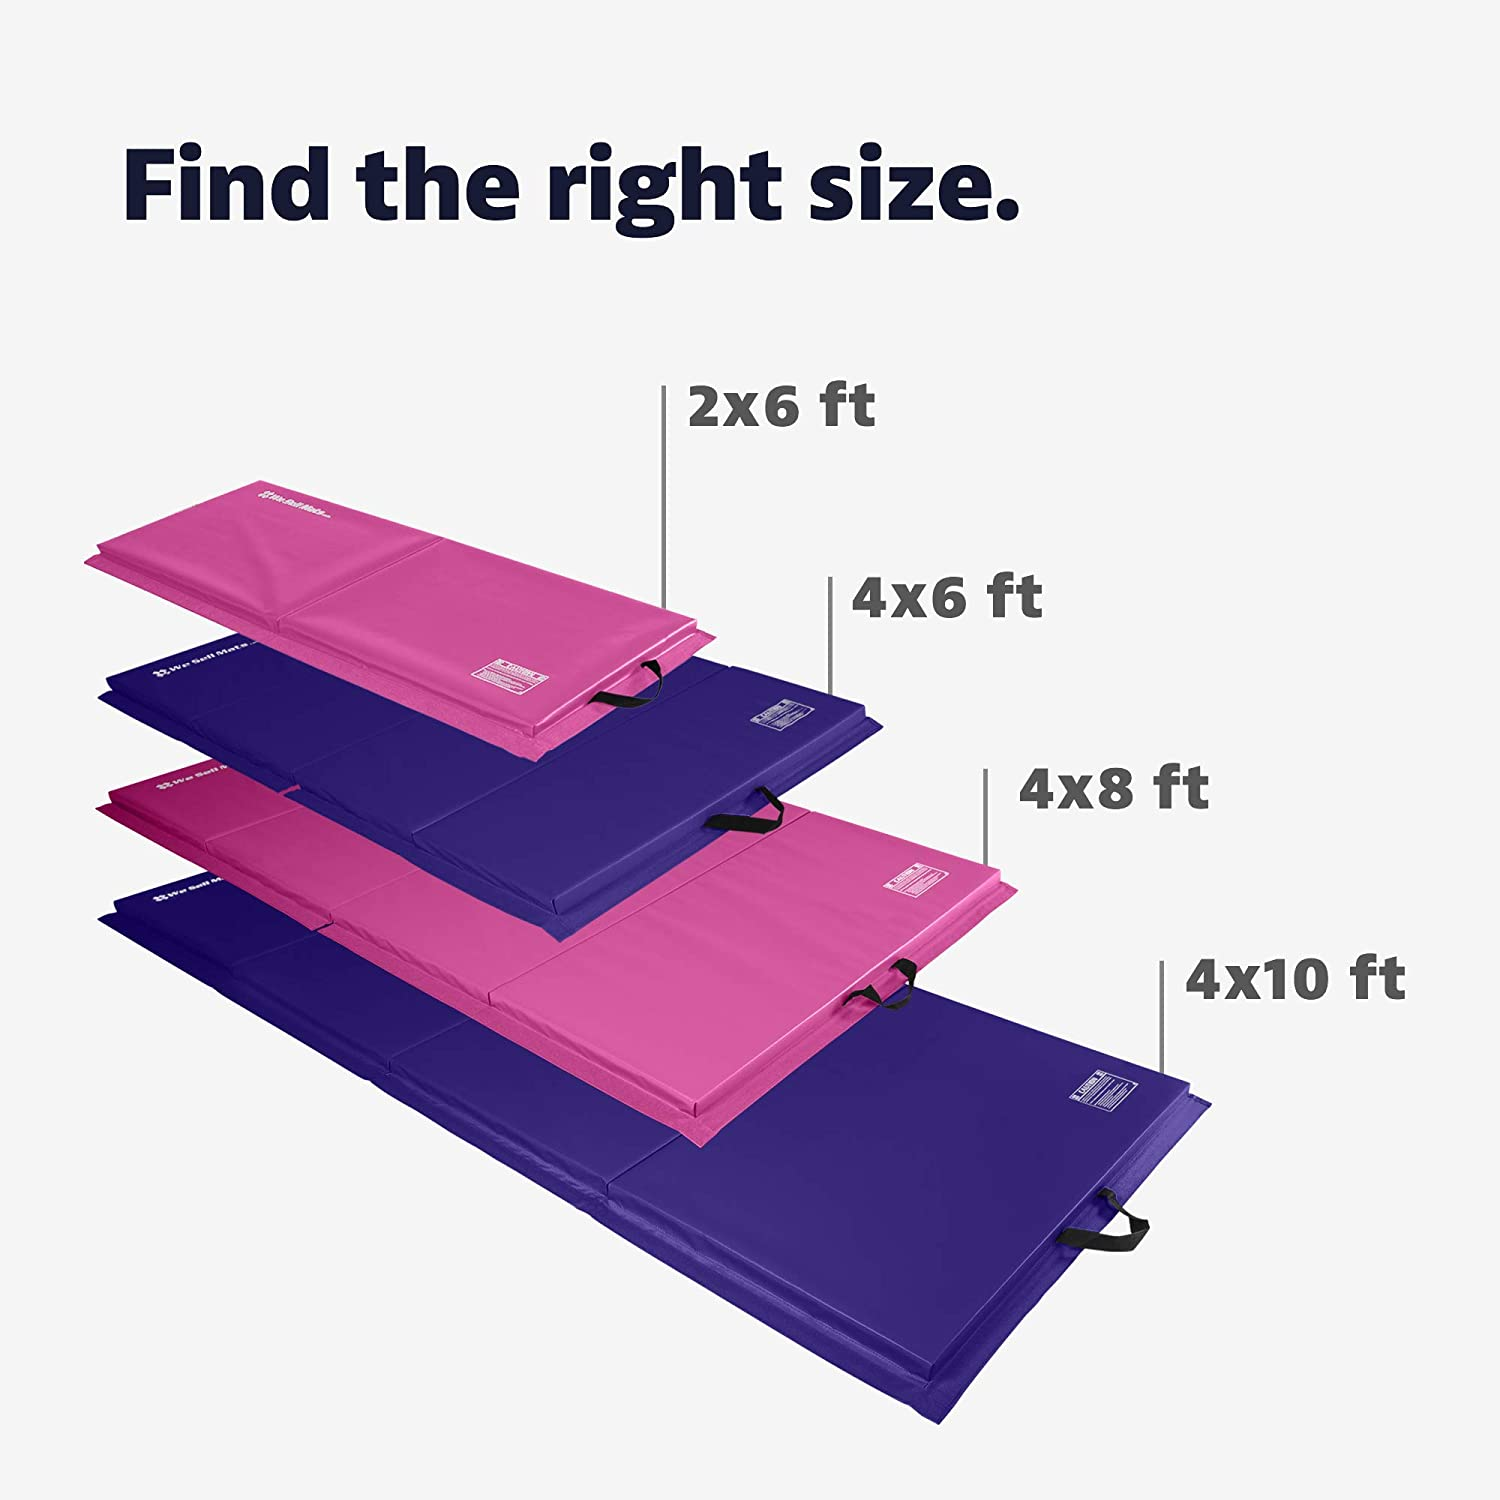 Lightweight and Folds for Carrying Purple//Pink We Sell Mats 4 ft x 8 ft x 2 in Personal Fitness /& Exercise Mat